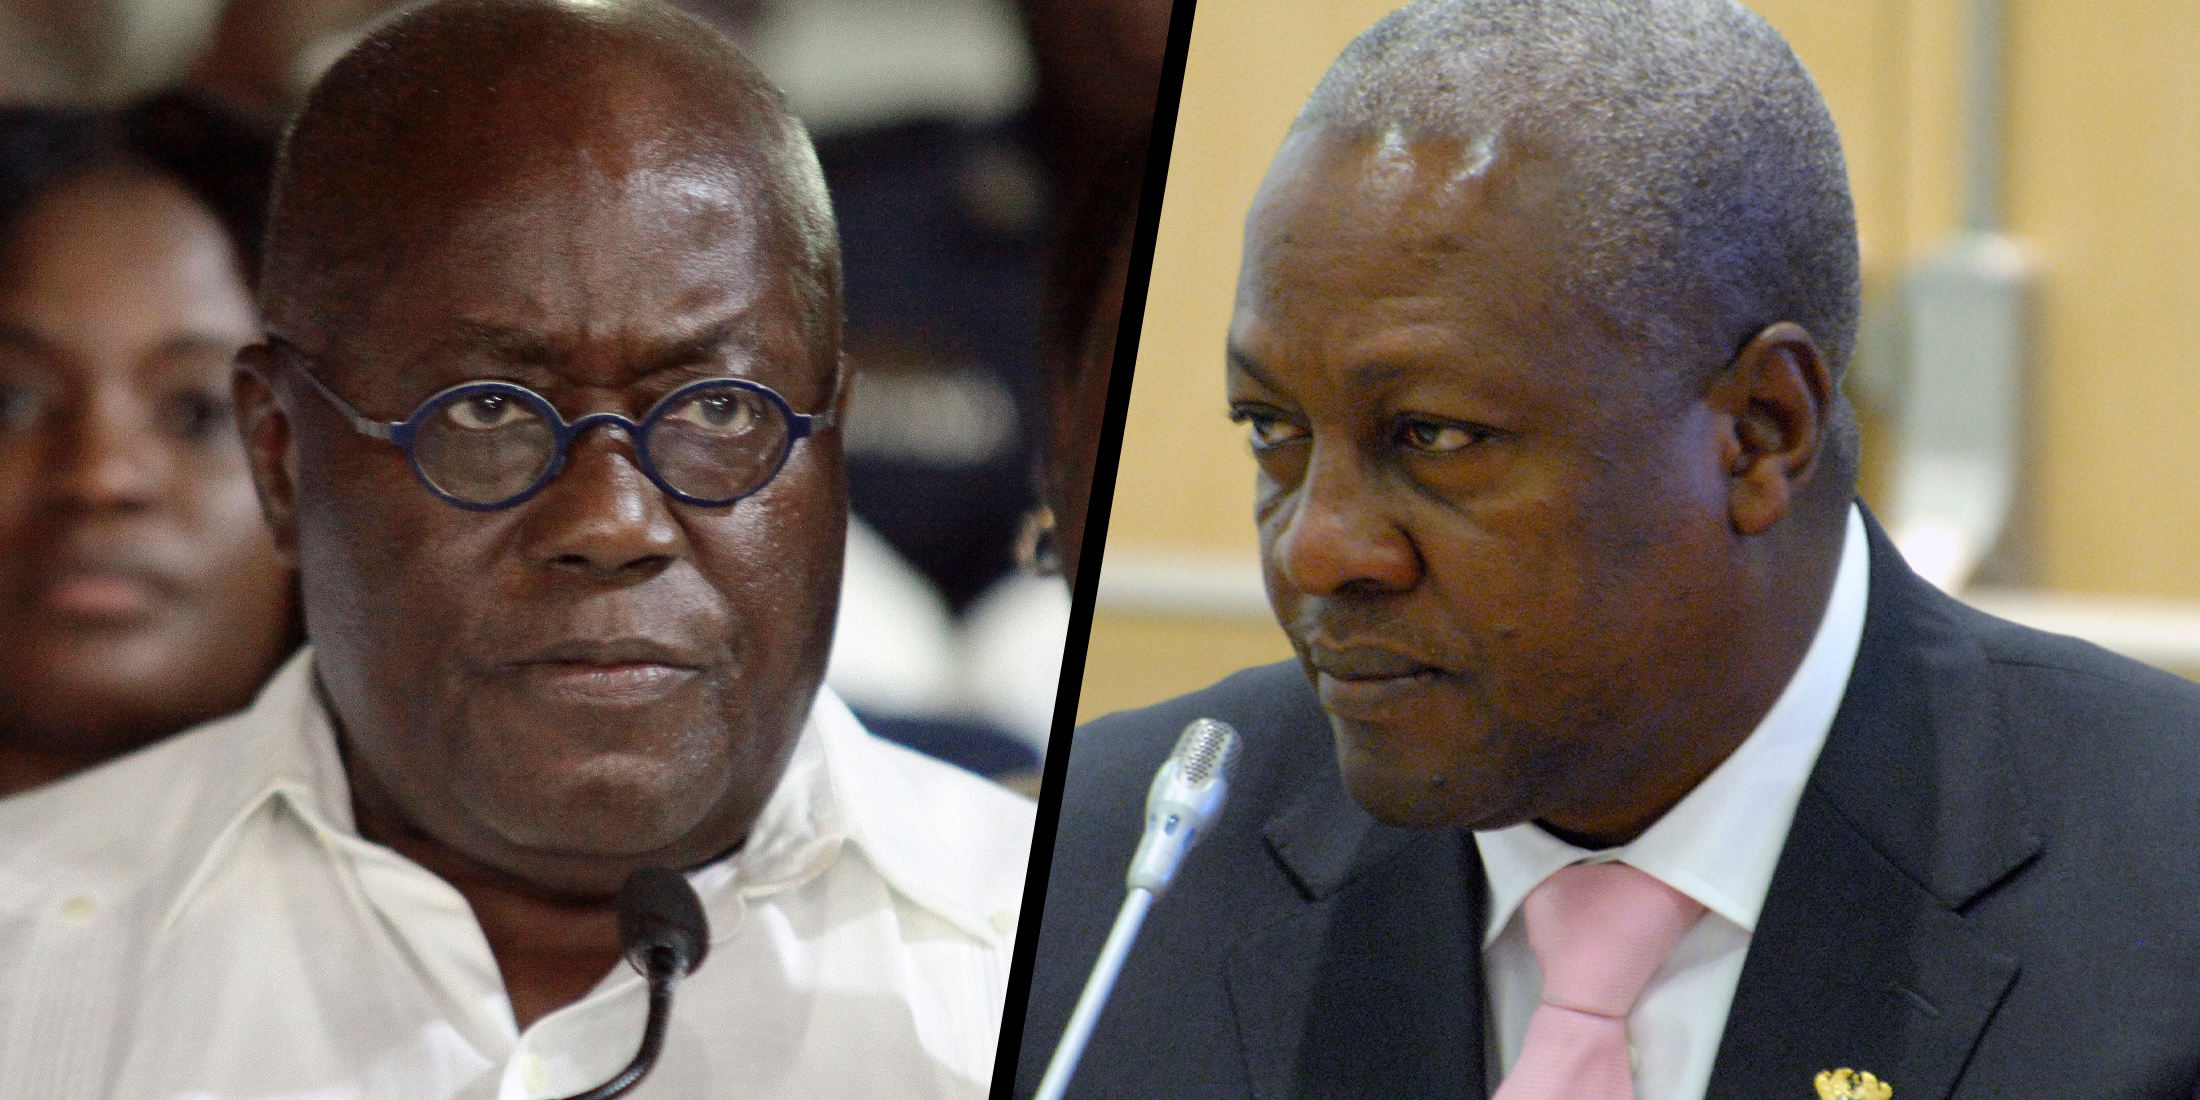 Ghana's election: A play for change or continuity